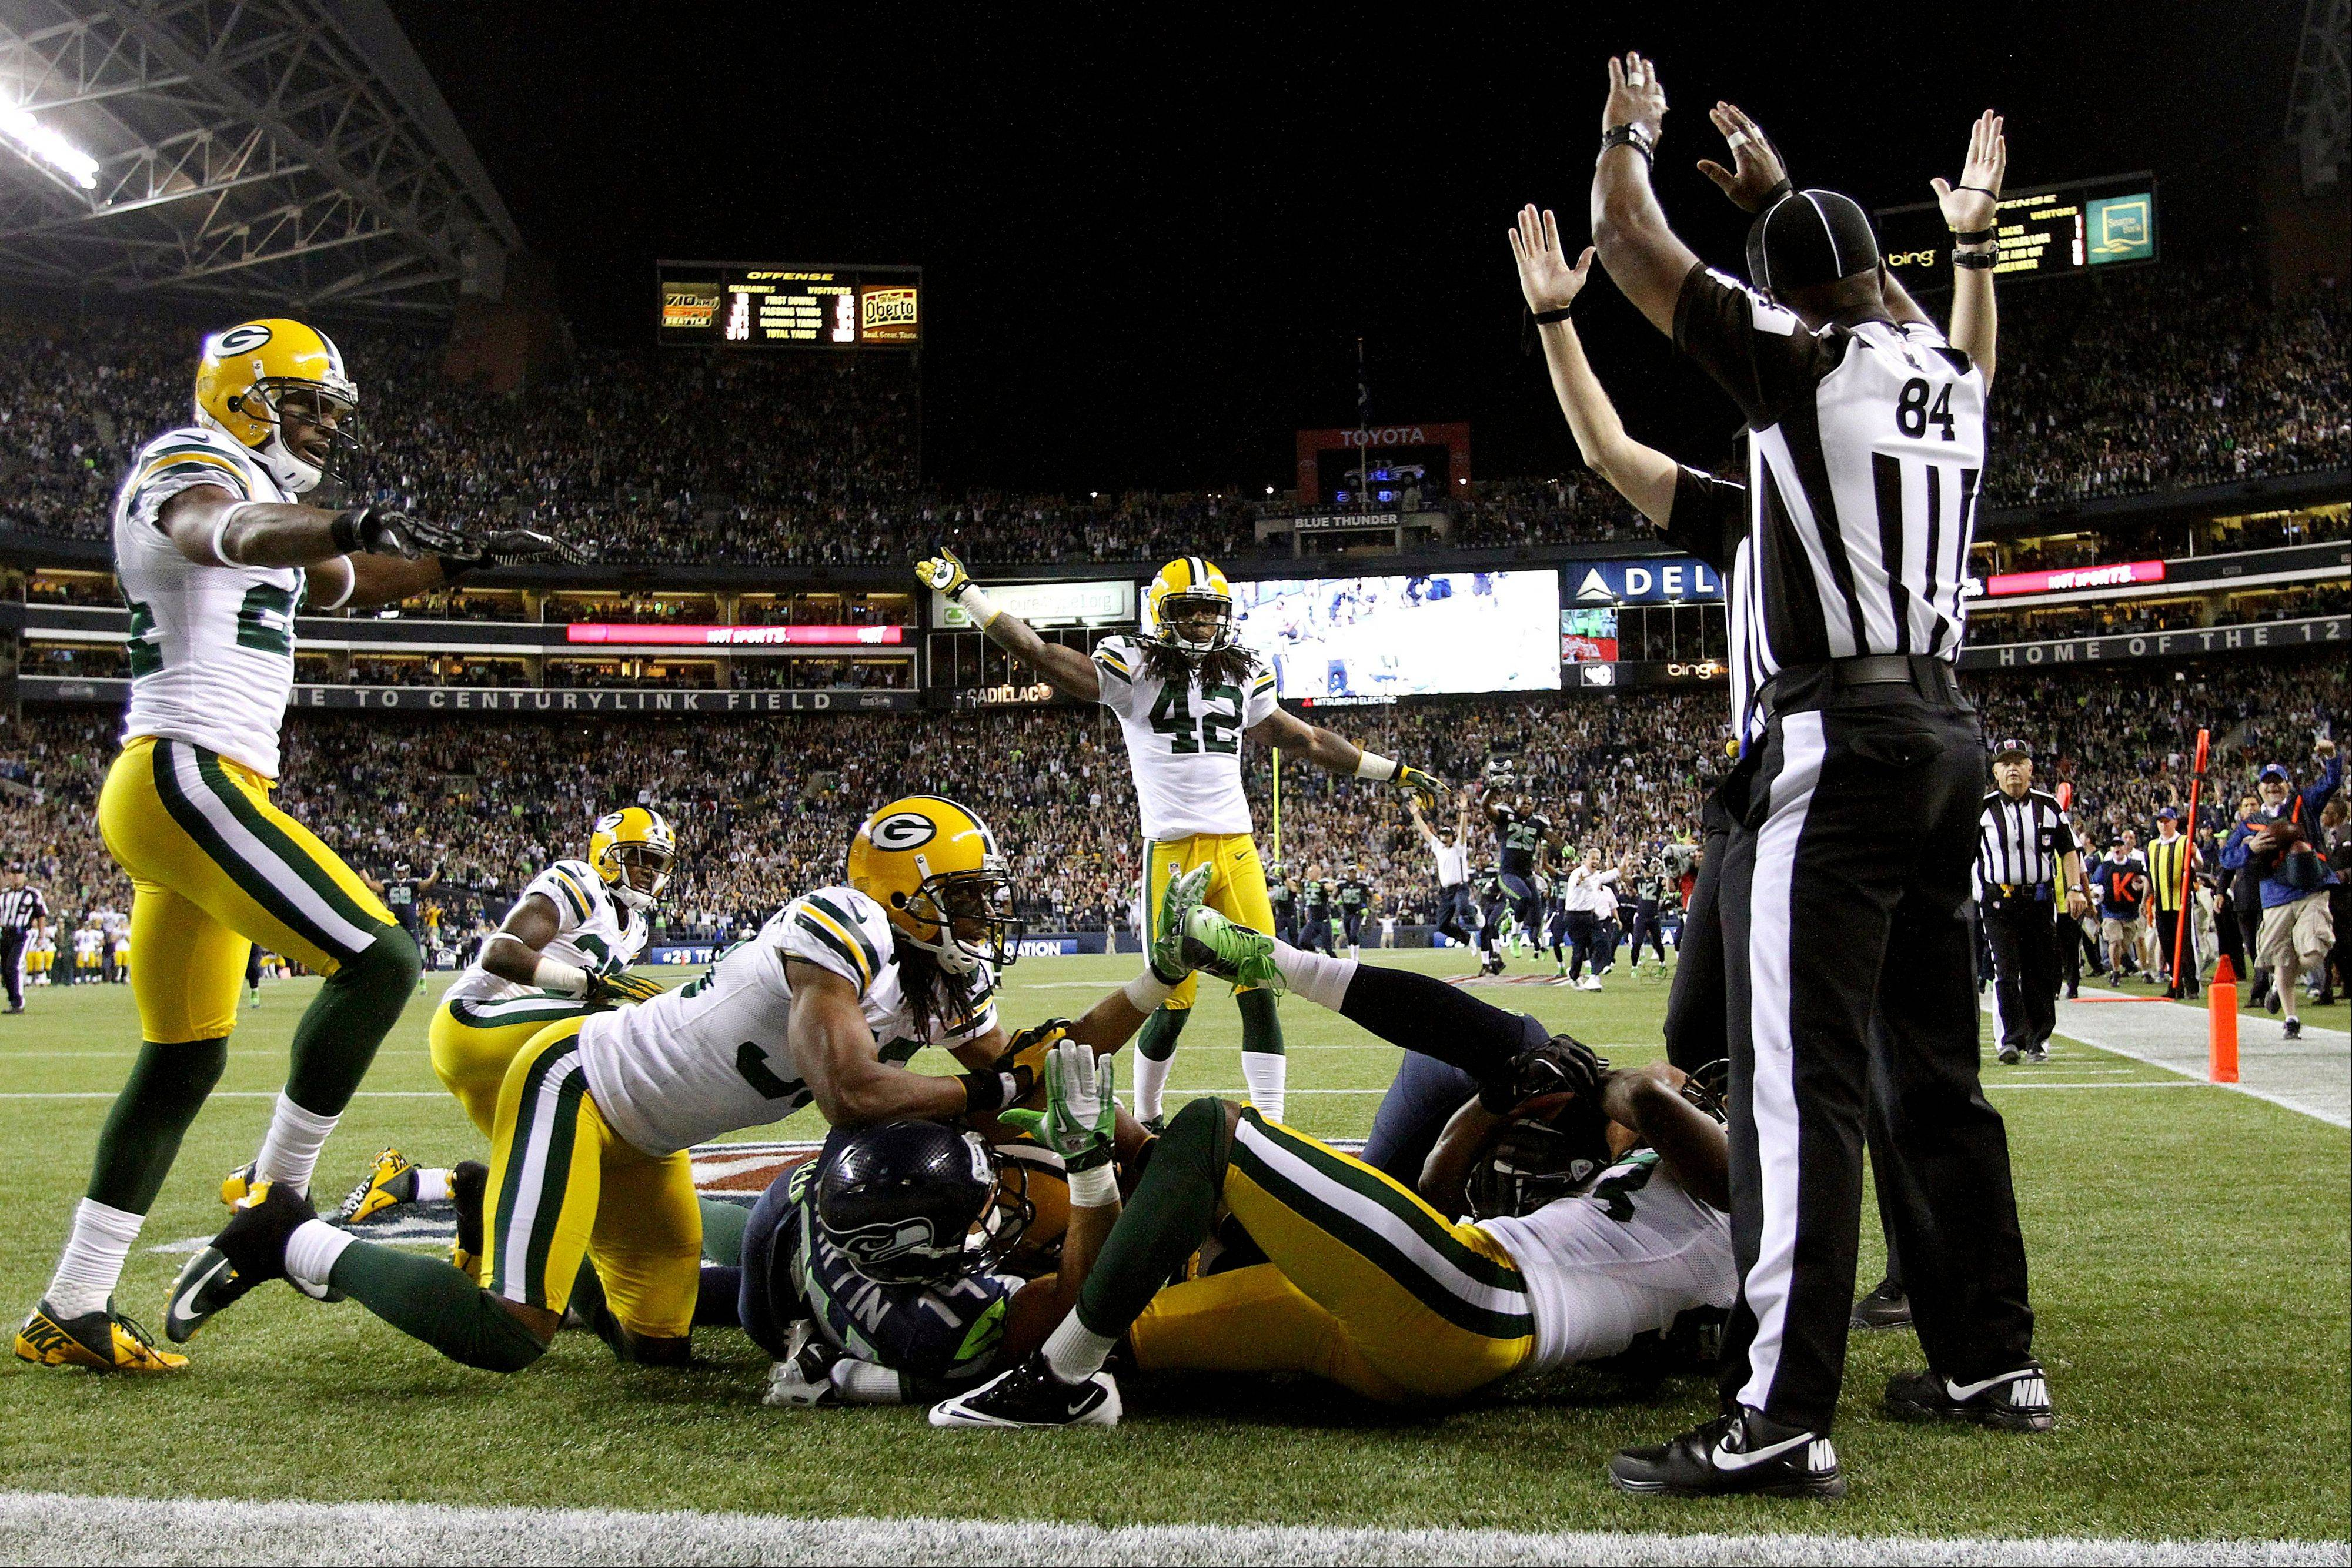 Please, enough already with these NFL 'officials'